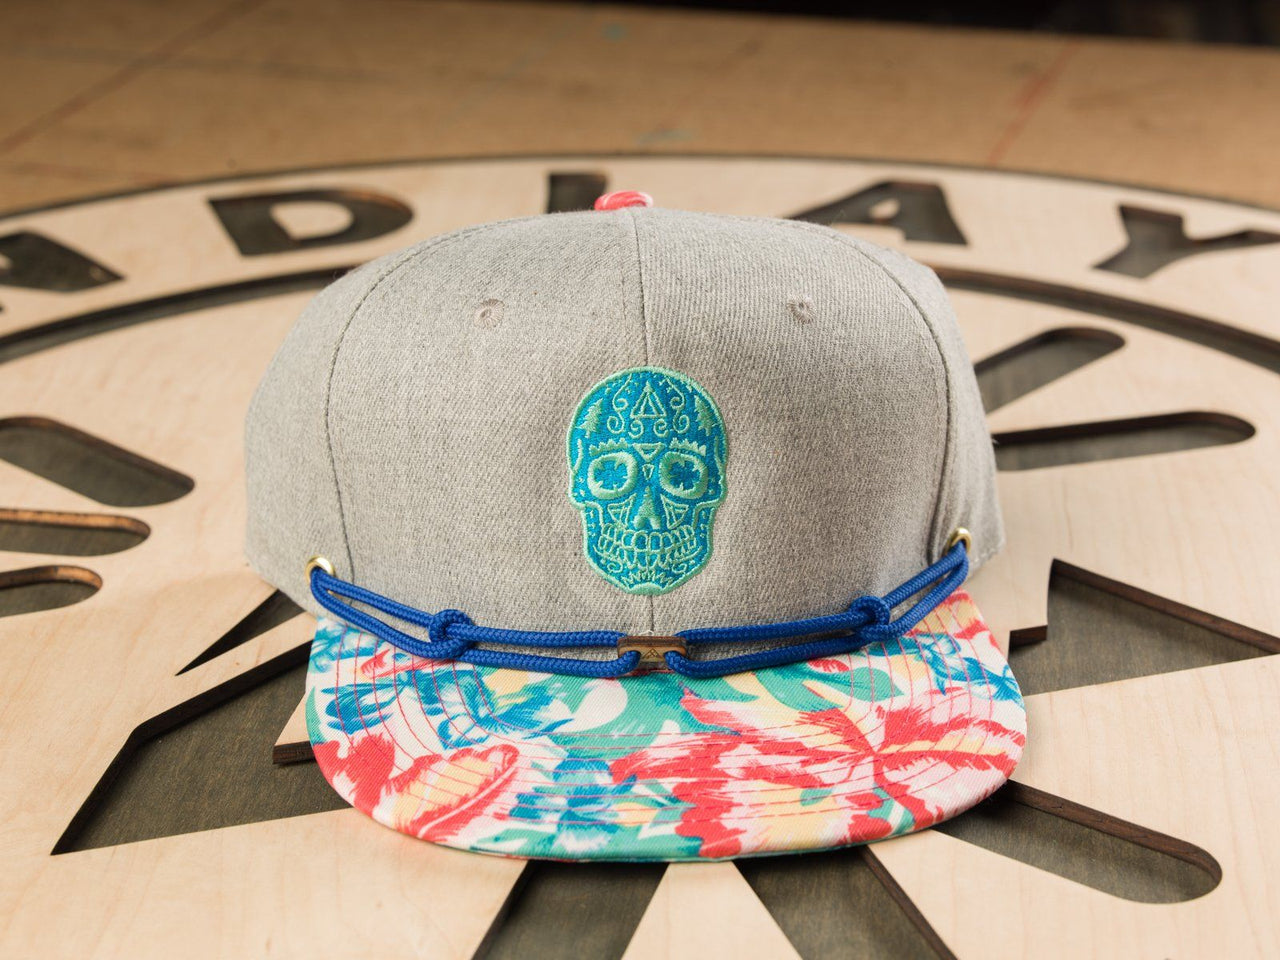 Sneaky Sugar Skull - Neon Blue / Mint (1 of 1) Limited Edition Hats Findlay Hats